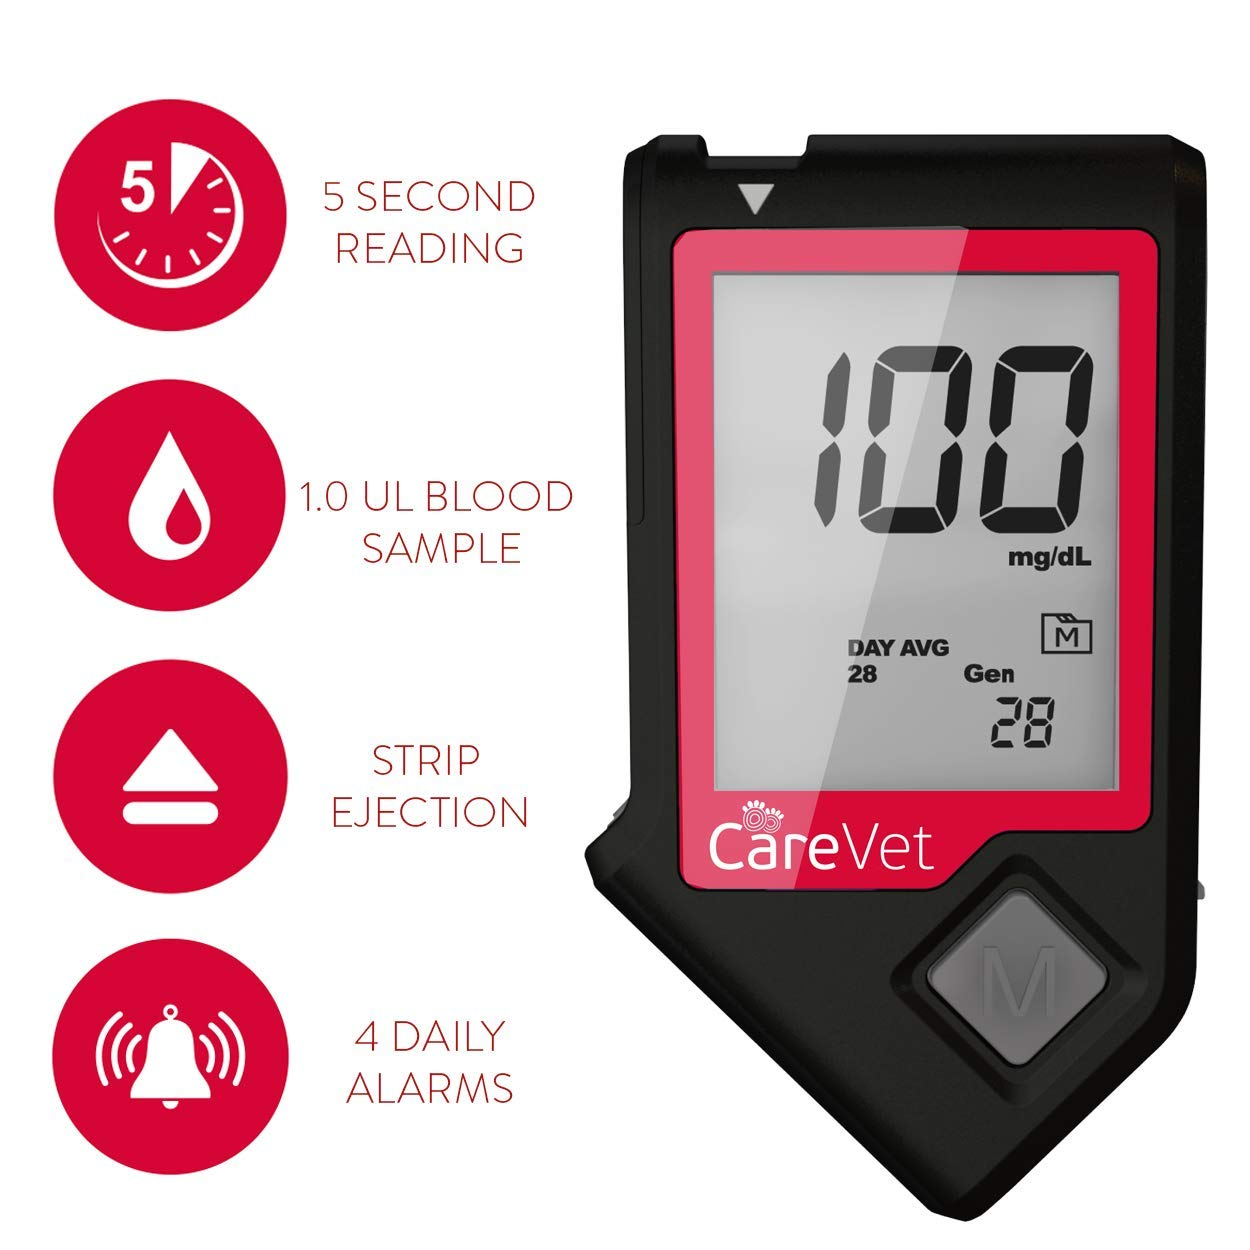 Care Vet Blood Glucose Monitoring Kit, Diabetes Testing for Dogs and Cats - Glucose Meter with Hygeinic Strip Ejection Plus 10 Bonus Glucose Test ...